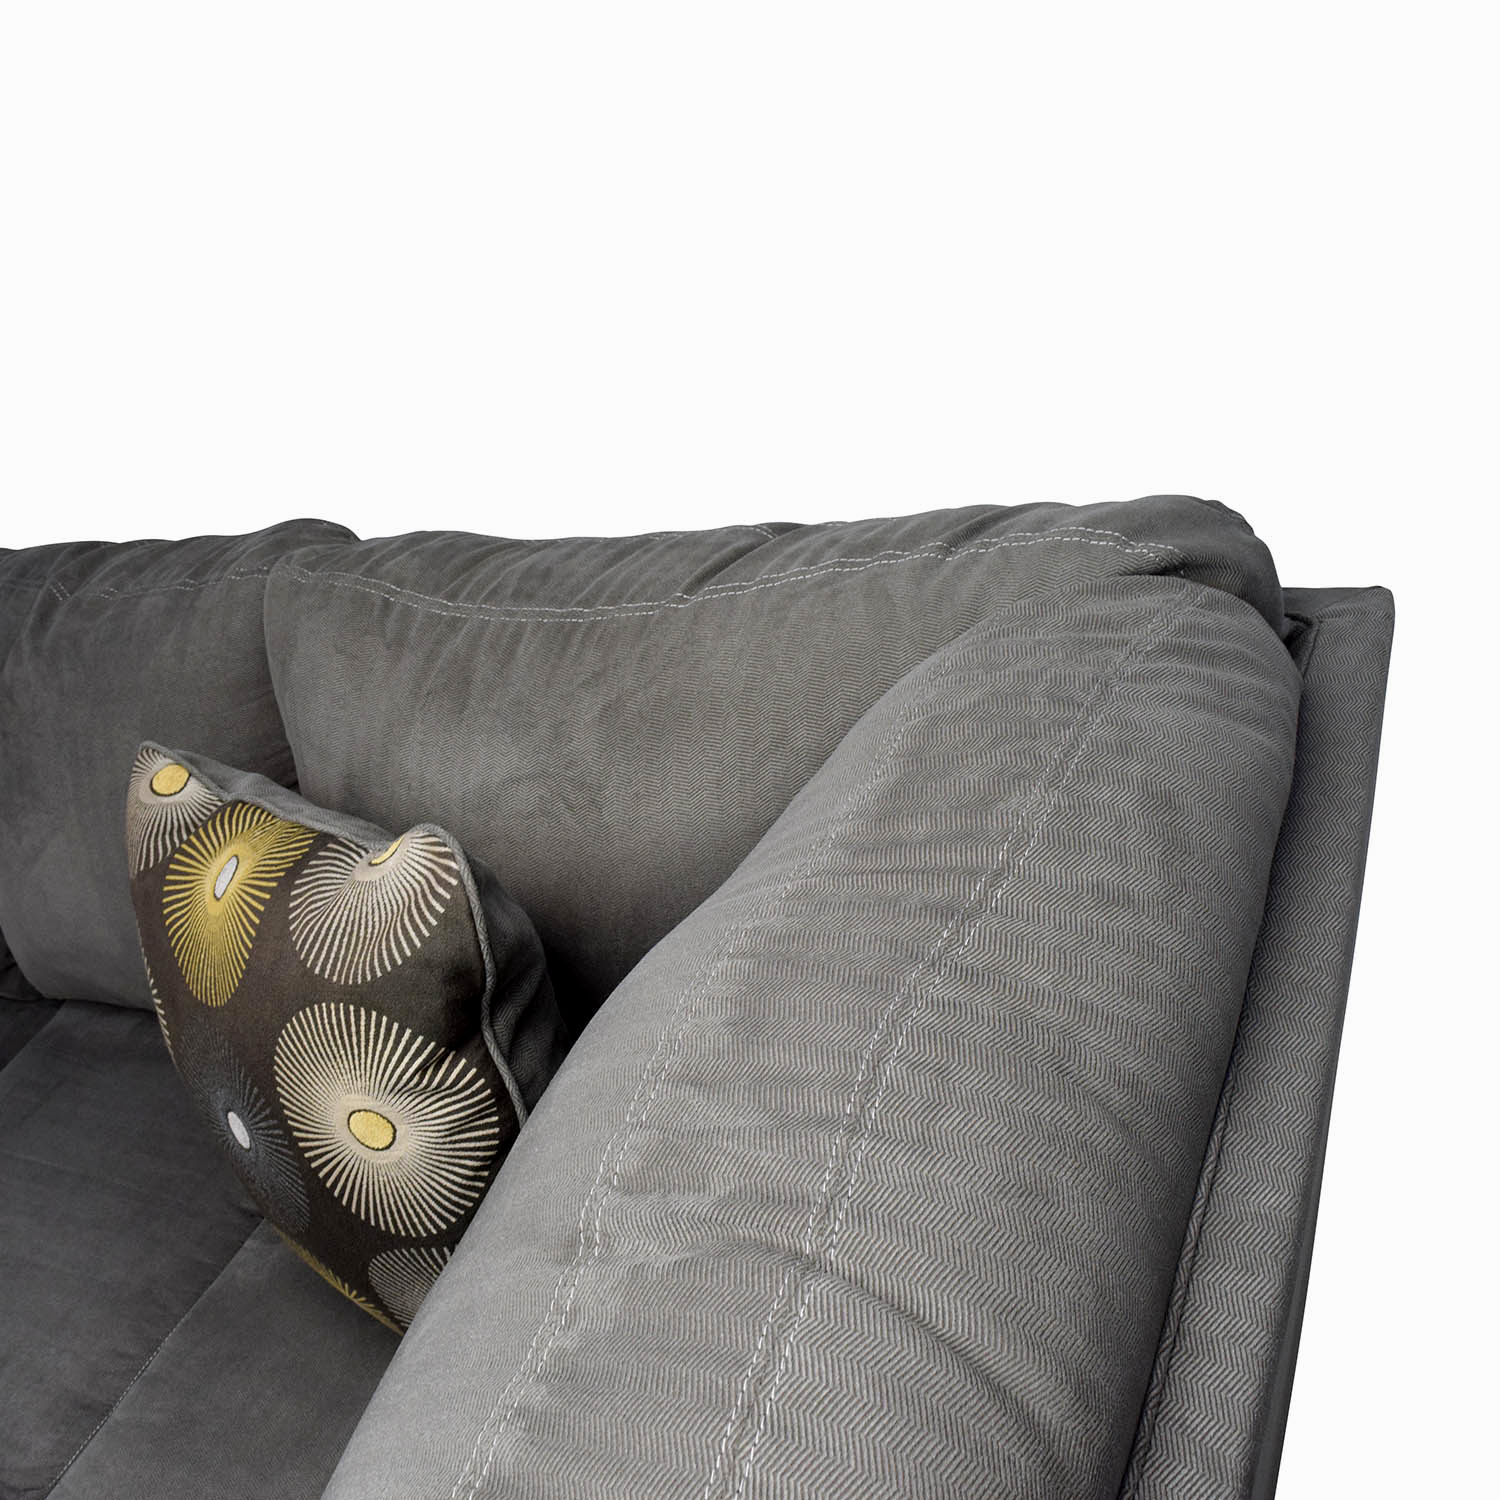 superb sectional sofas under $500 image-Lovely Sectional sofas Under $500 Ideas